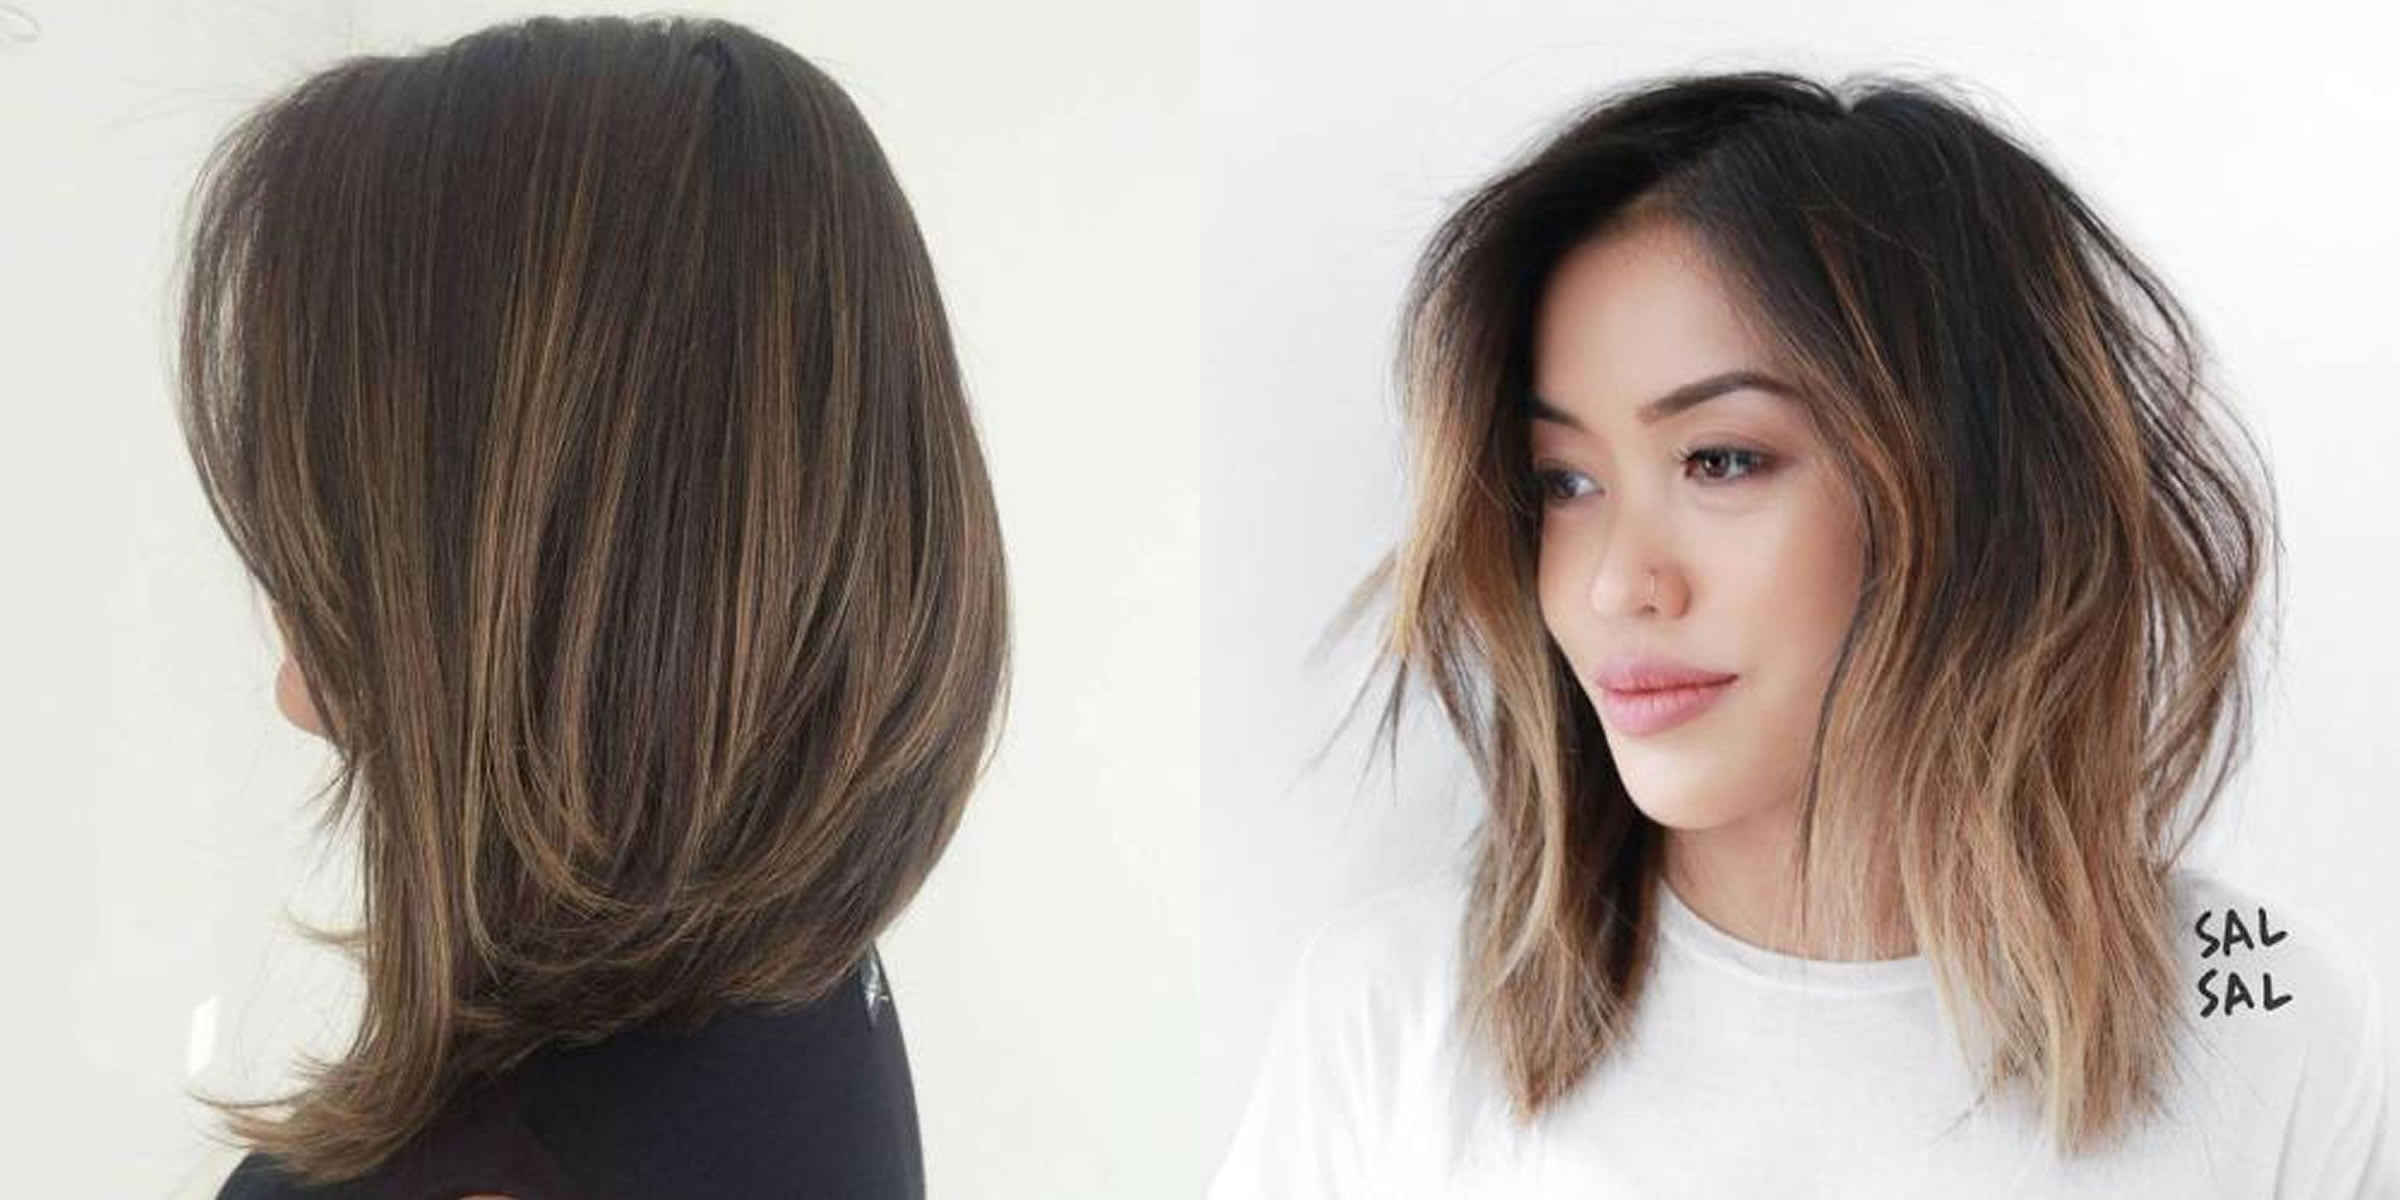 2019 Hairstyles And Colors